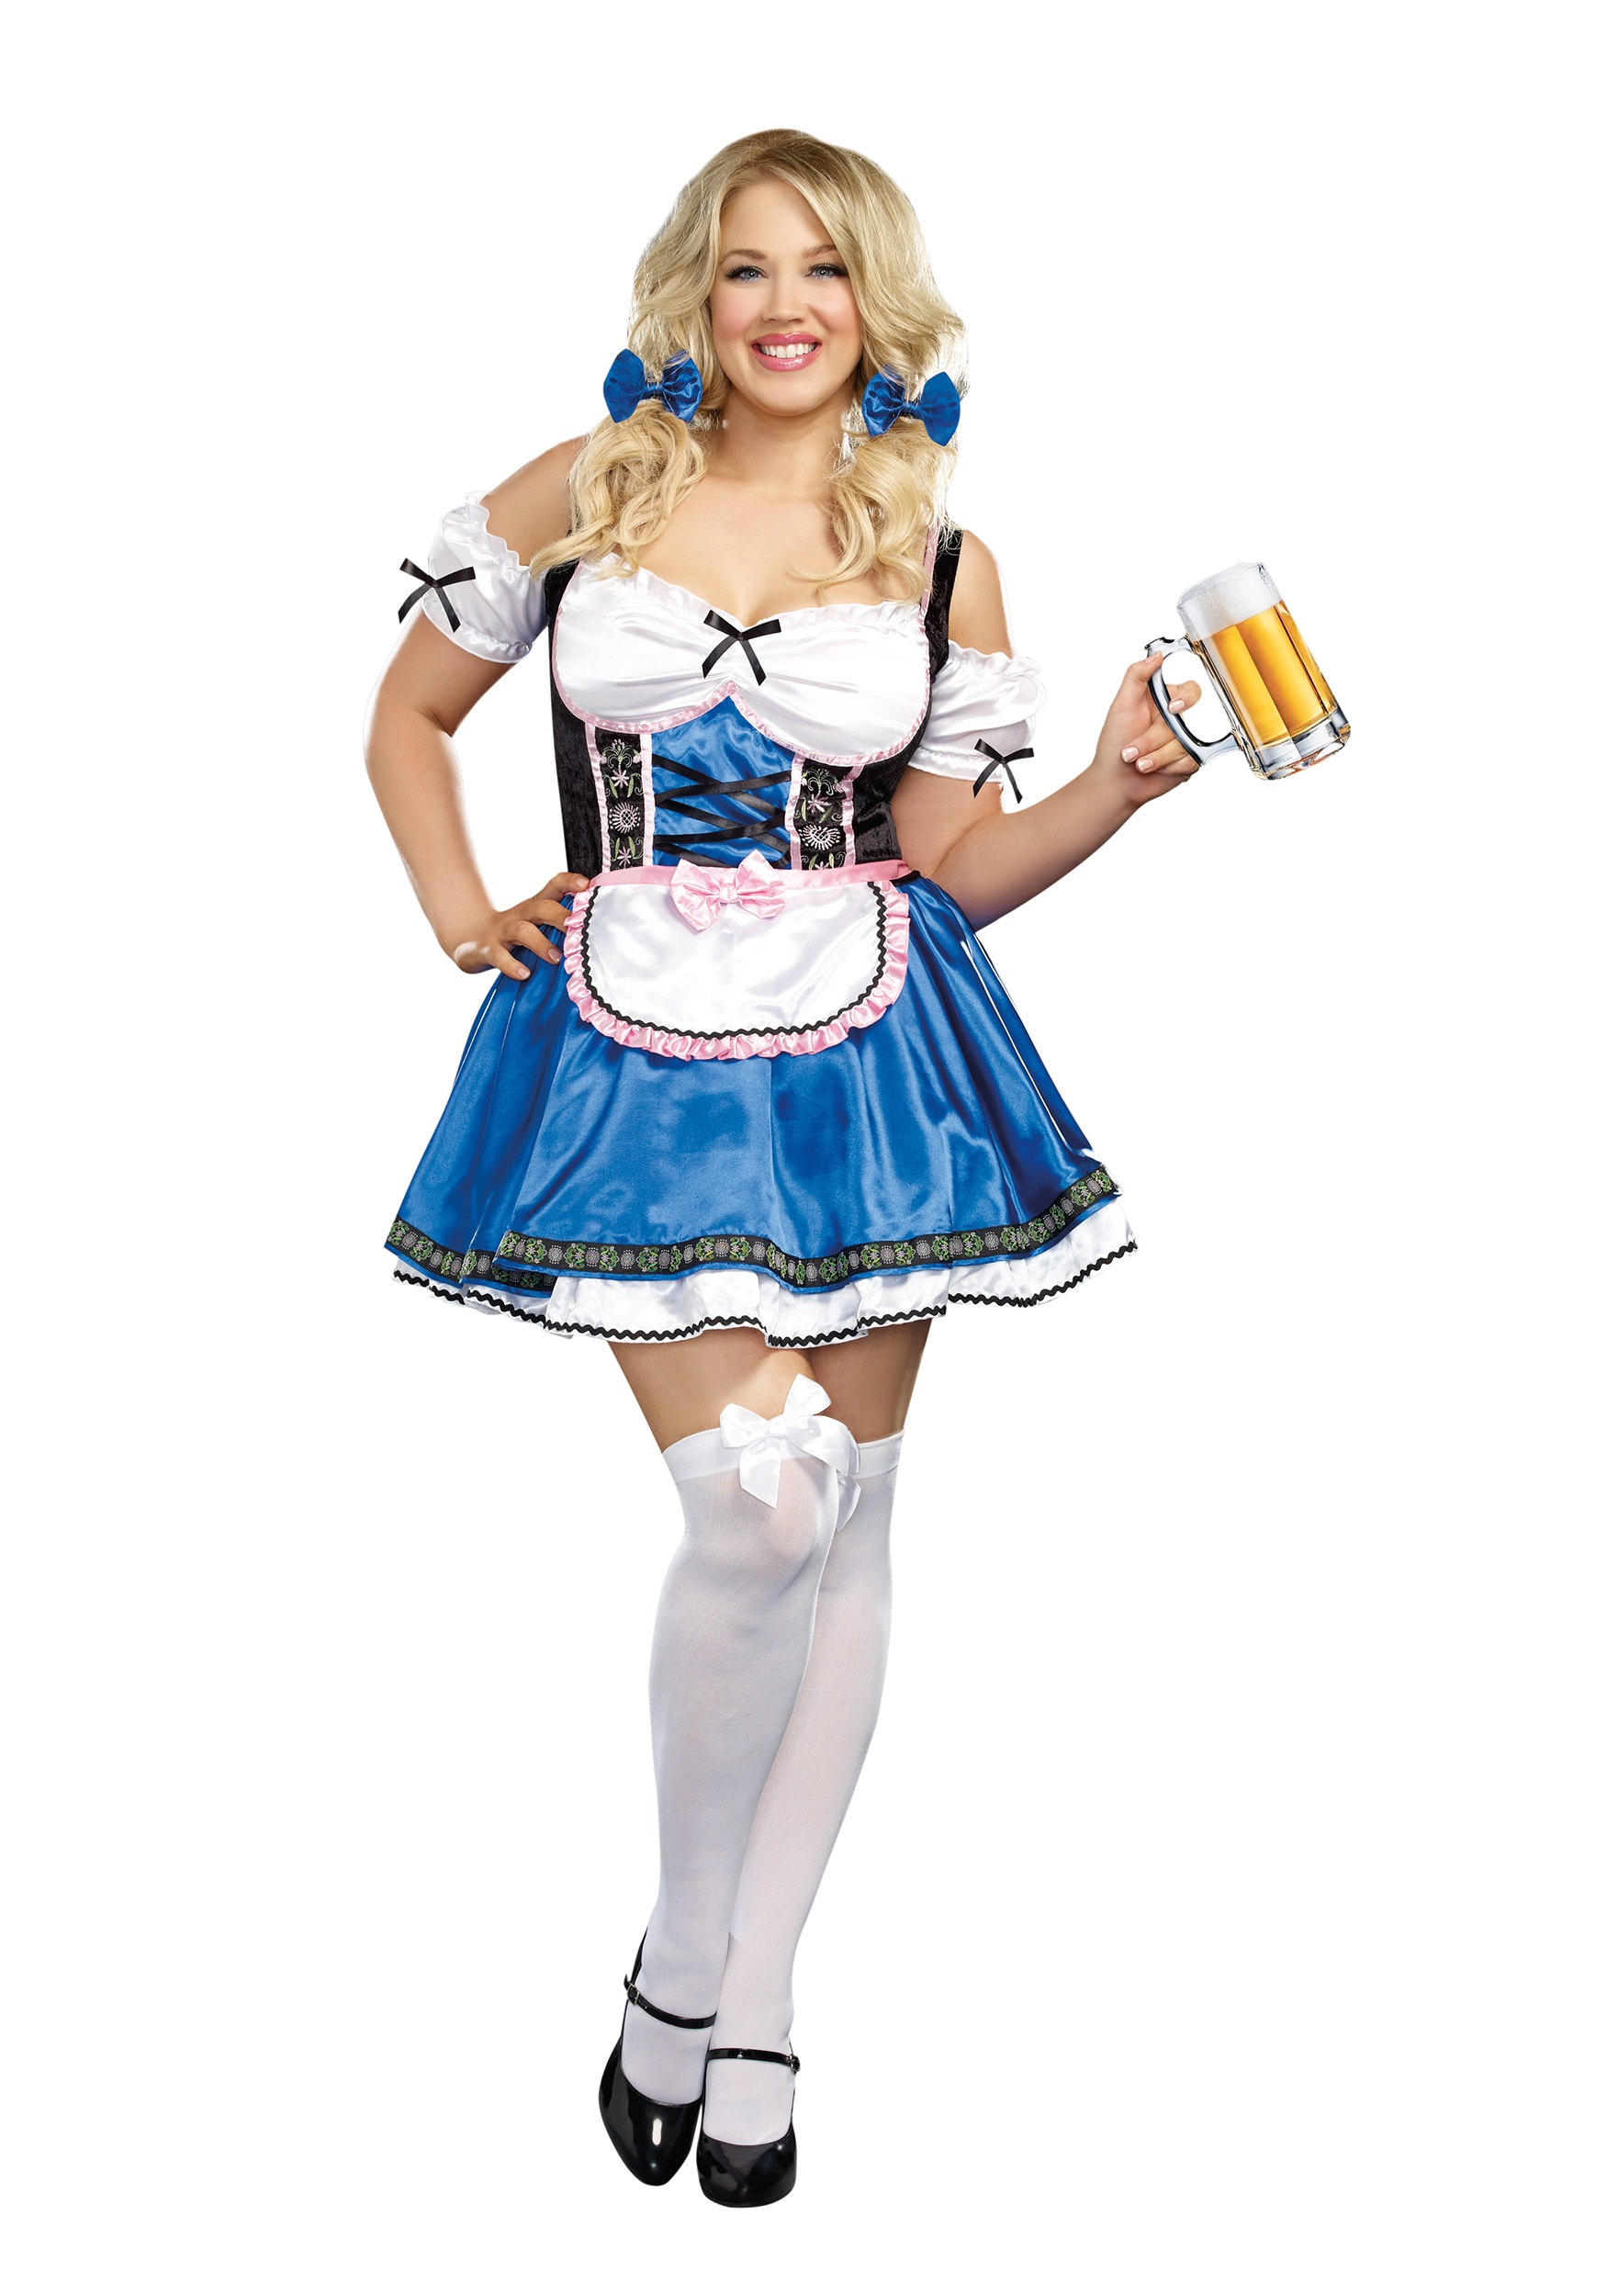 Womenu0027s Plus Size Happy New Beer Costume  sc 1 st  Halloween Costumes & Womenu0027s Plus Size Happy New Beer Costume - Halloween Costumes